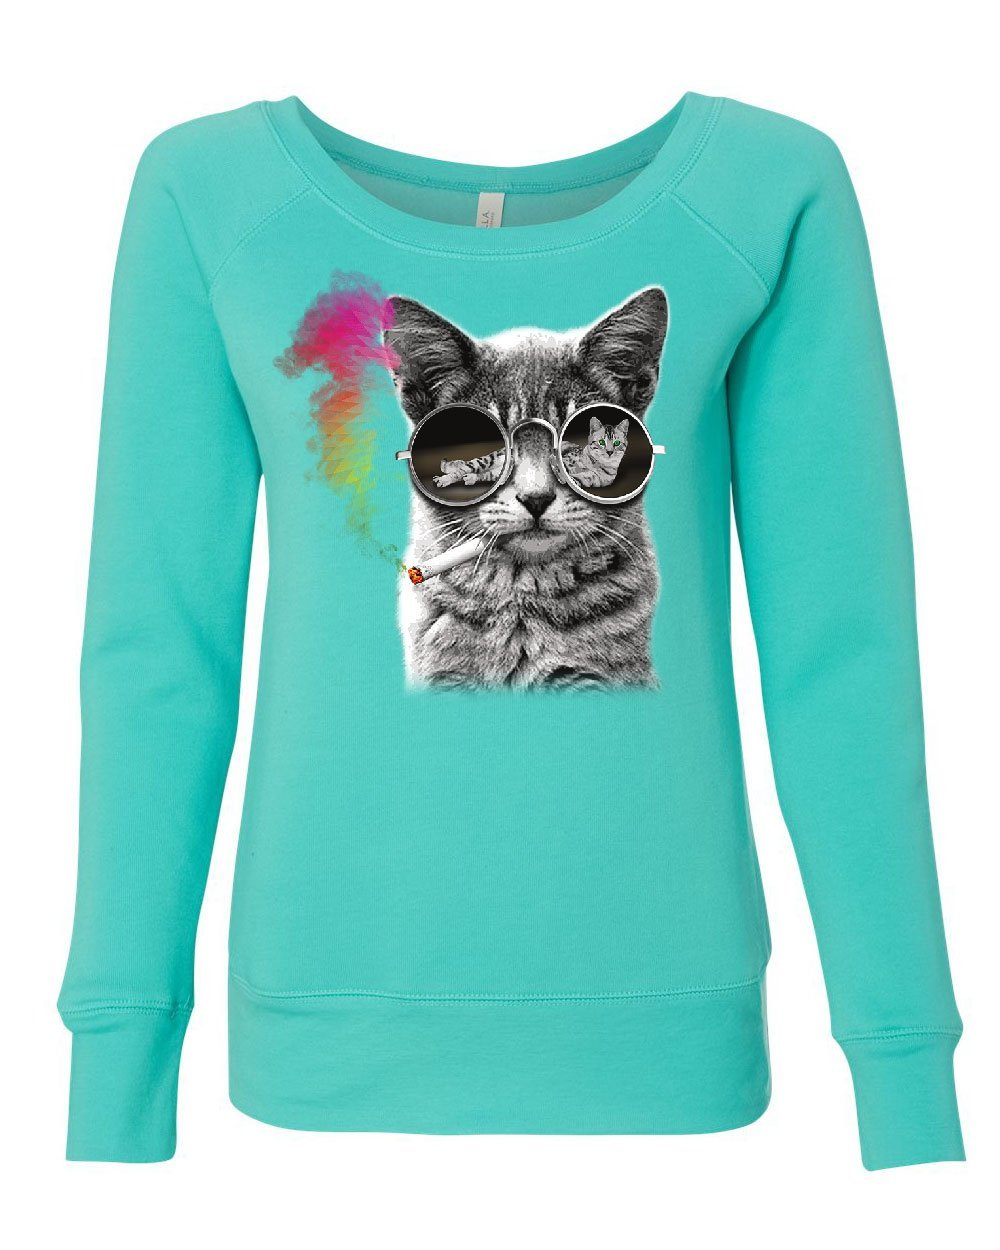 Tee Hunt Smoking Cat With Glasses Women's Sweatshirt Cool Trippy Groovy Rainbow 420 Teal XL